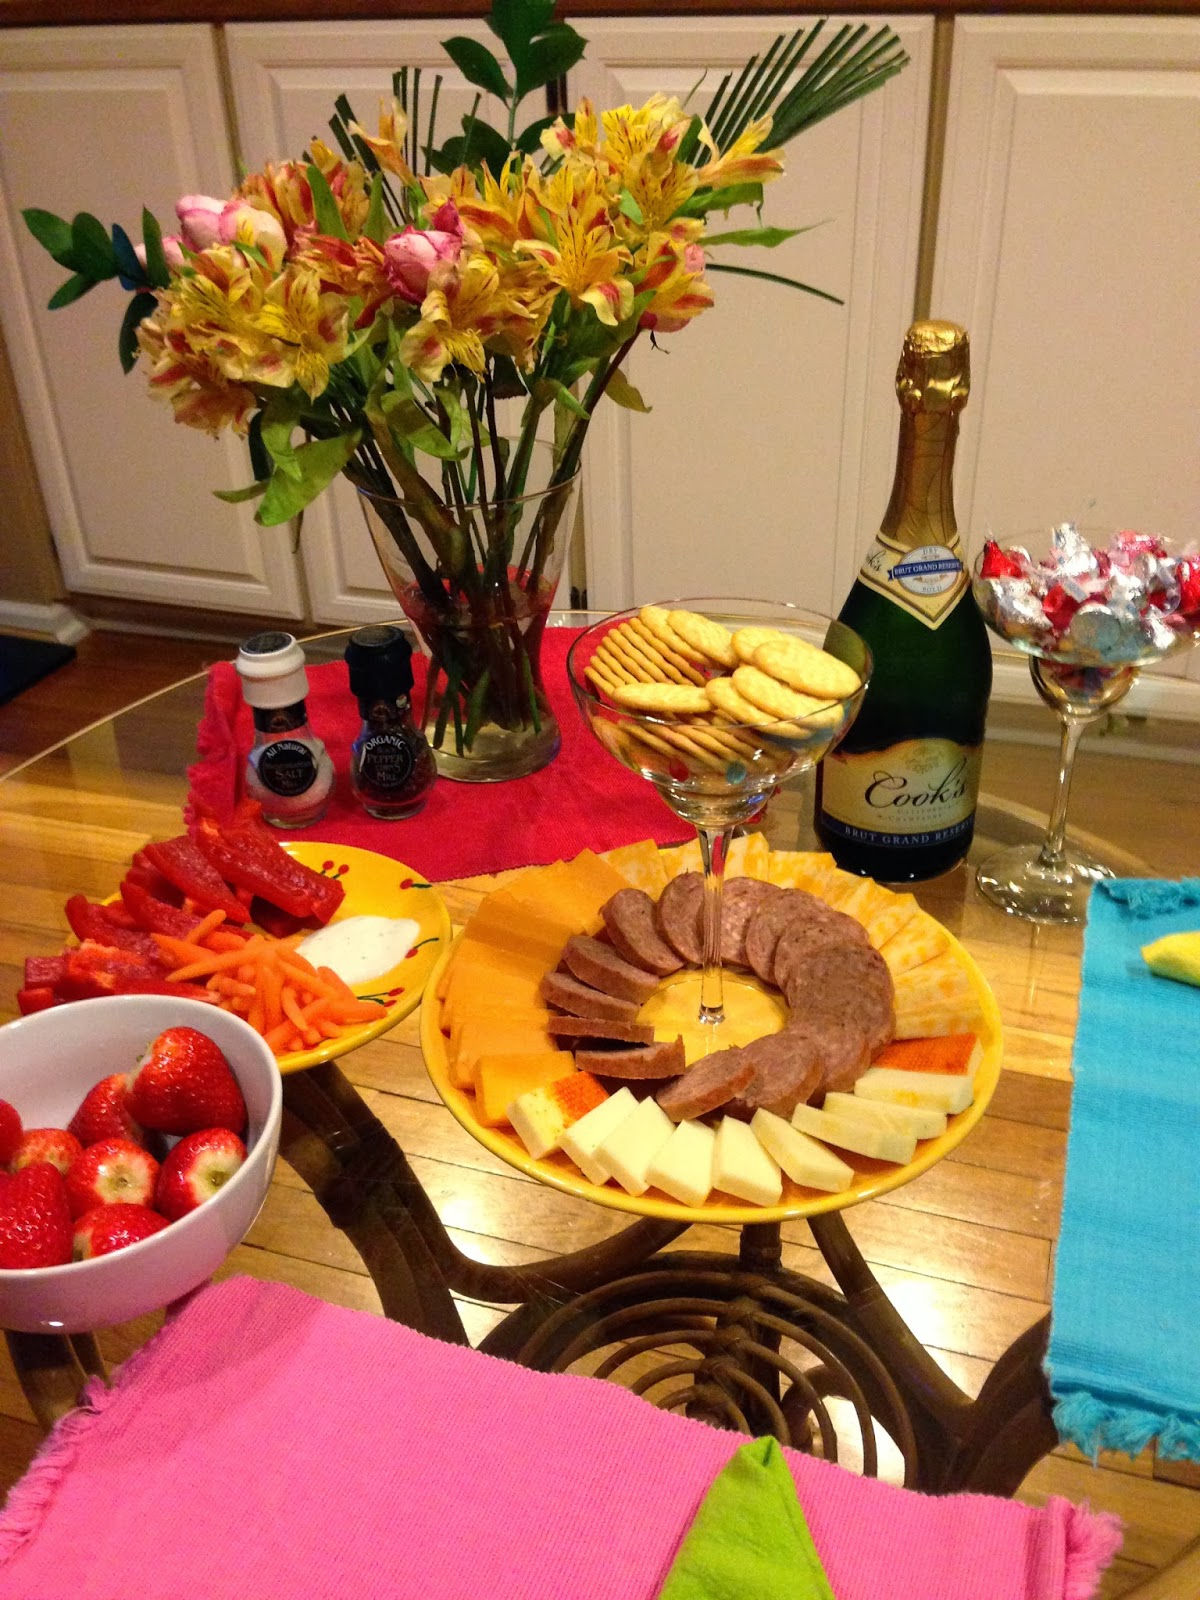 Fruit, veggies, meat, cheese, & crackers, sparkling wine, and chocolate